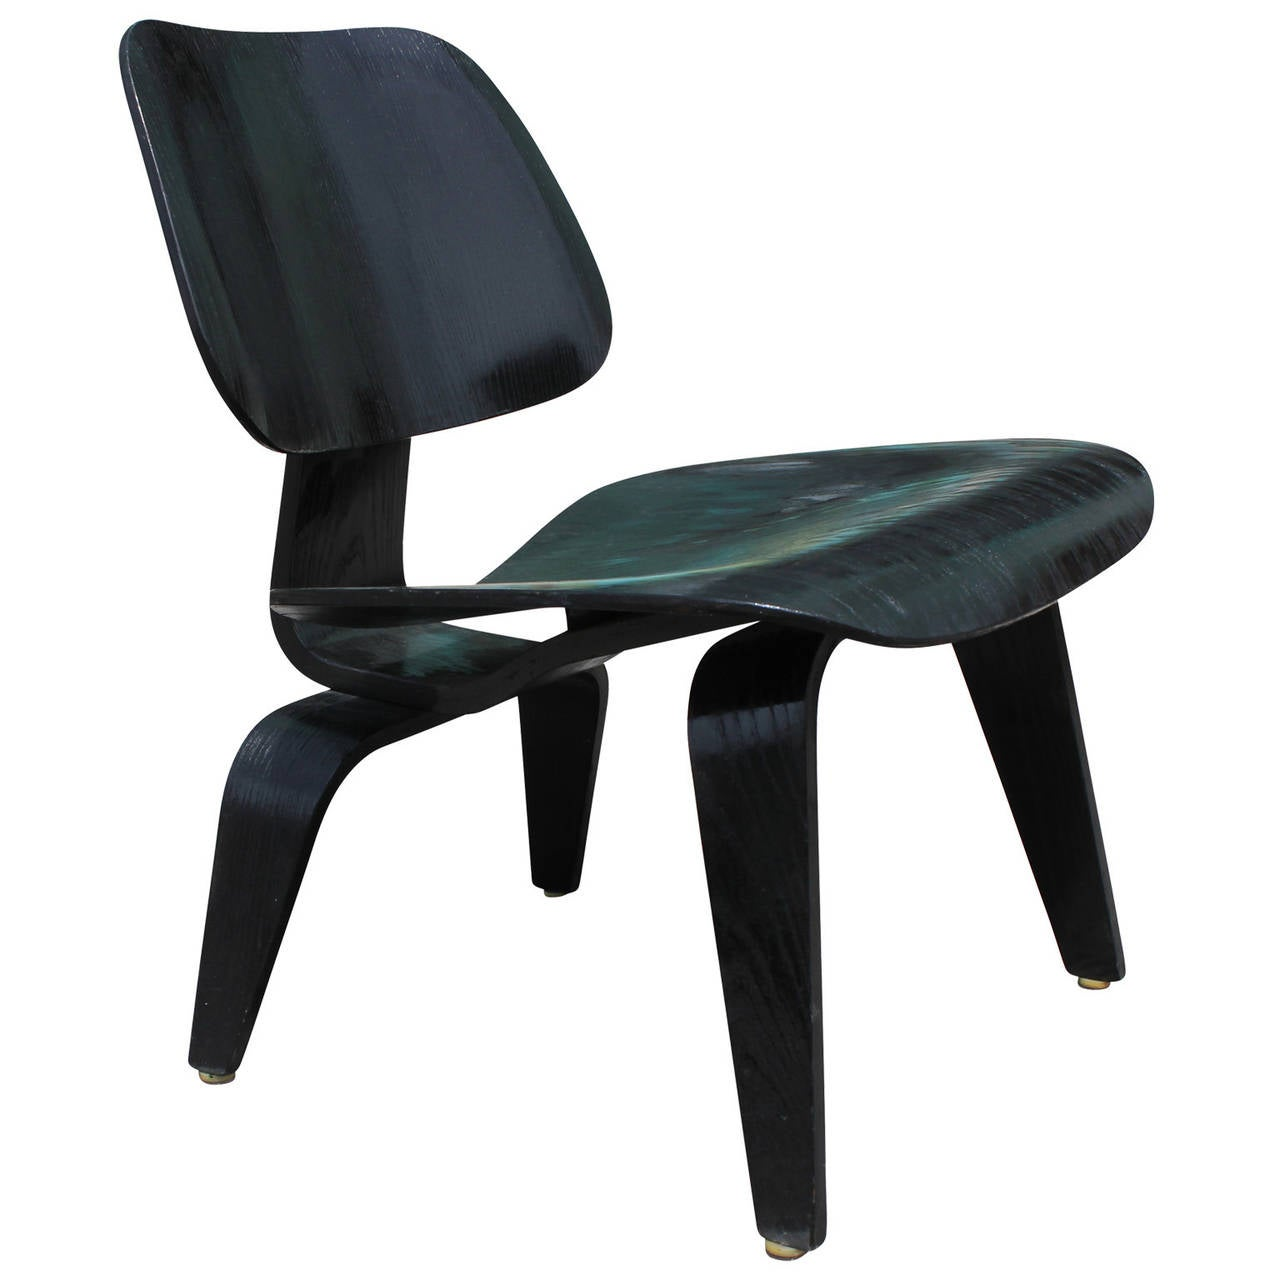 early black eames lcw chair at 1stdibs. Black Bedroom Furniture Sets. Home Design Ideas